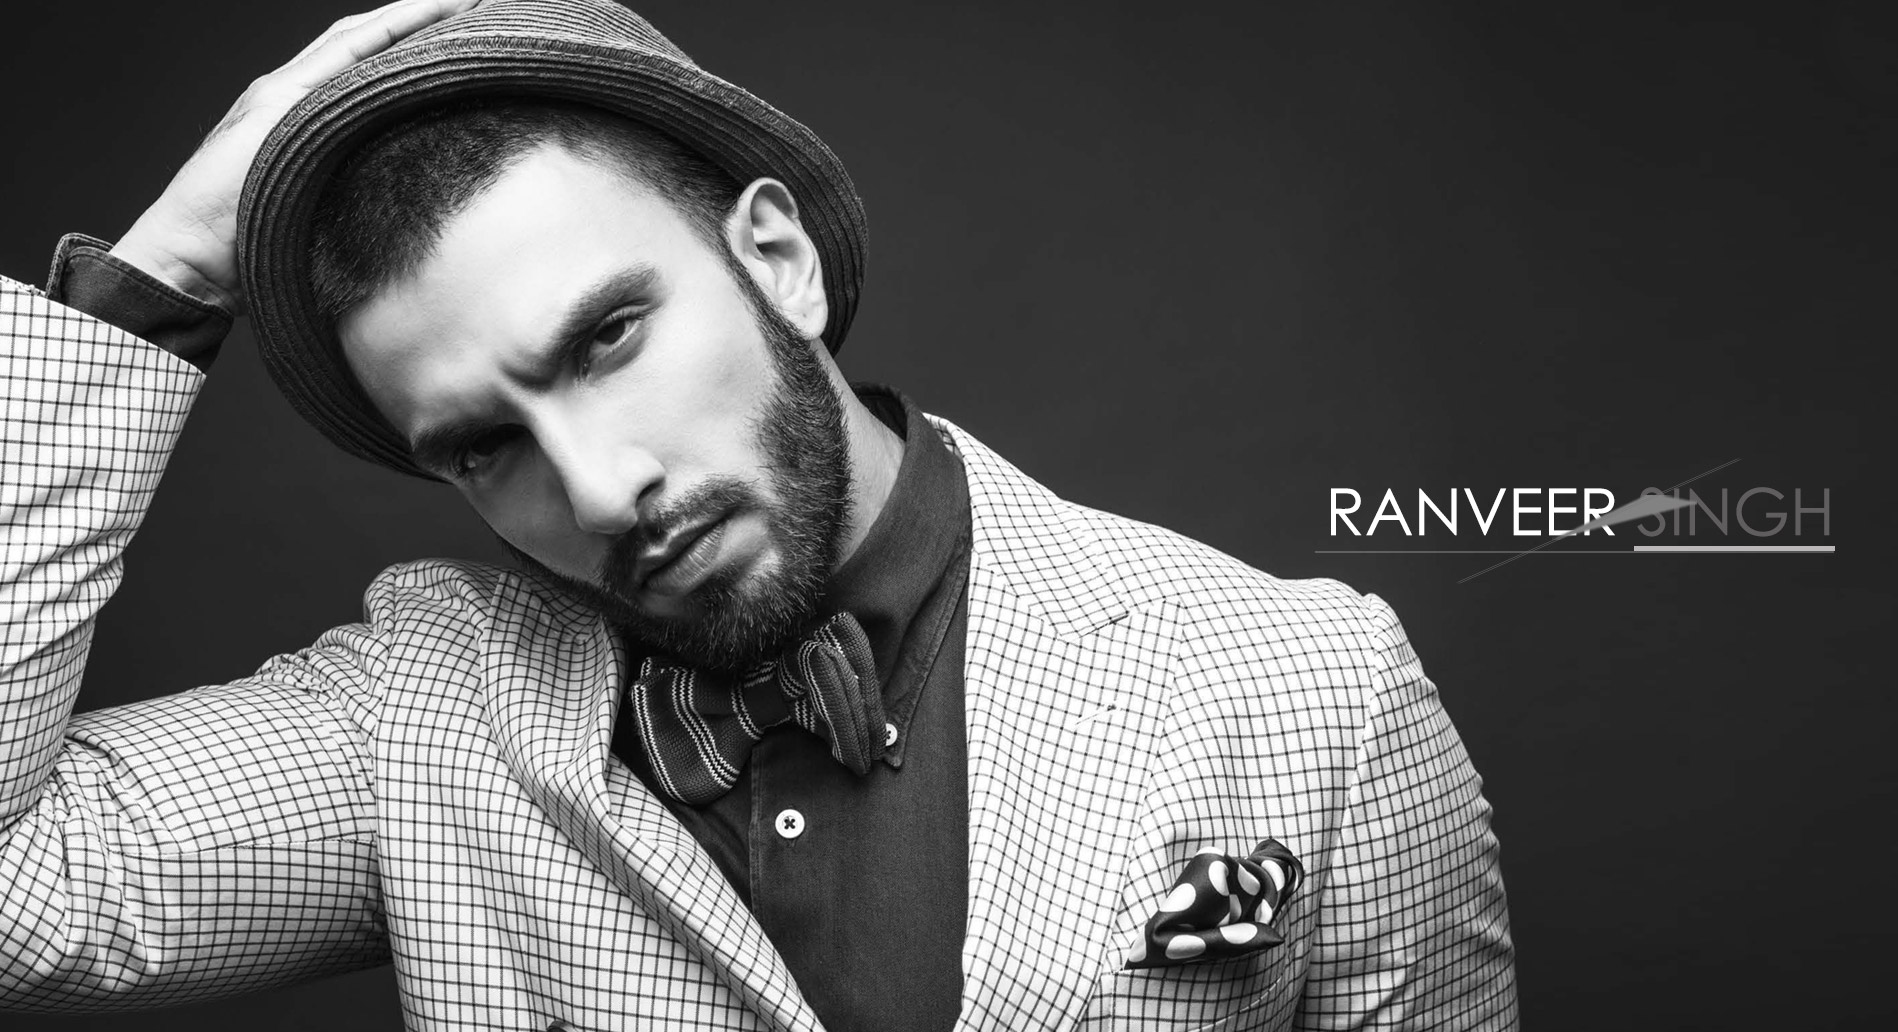 ranveer singh hd wallpaper | latest ranveer singh hd wallpaper of